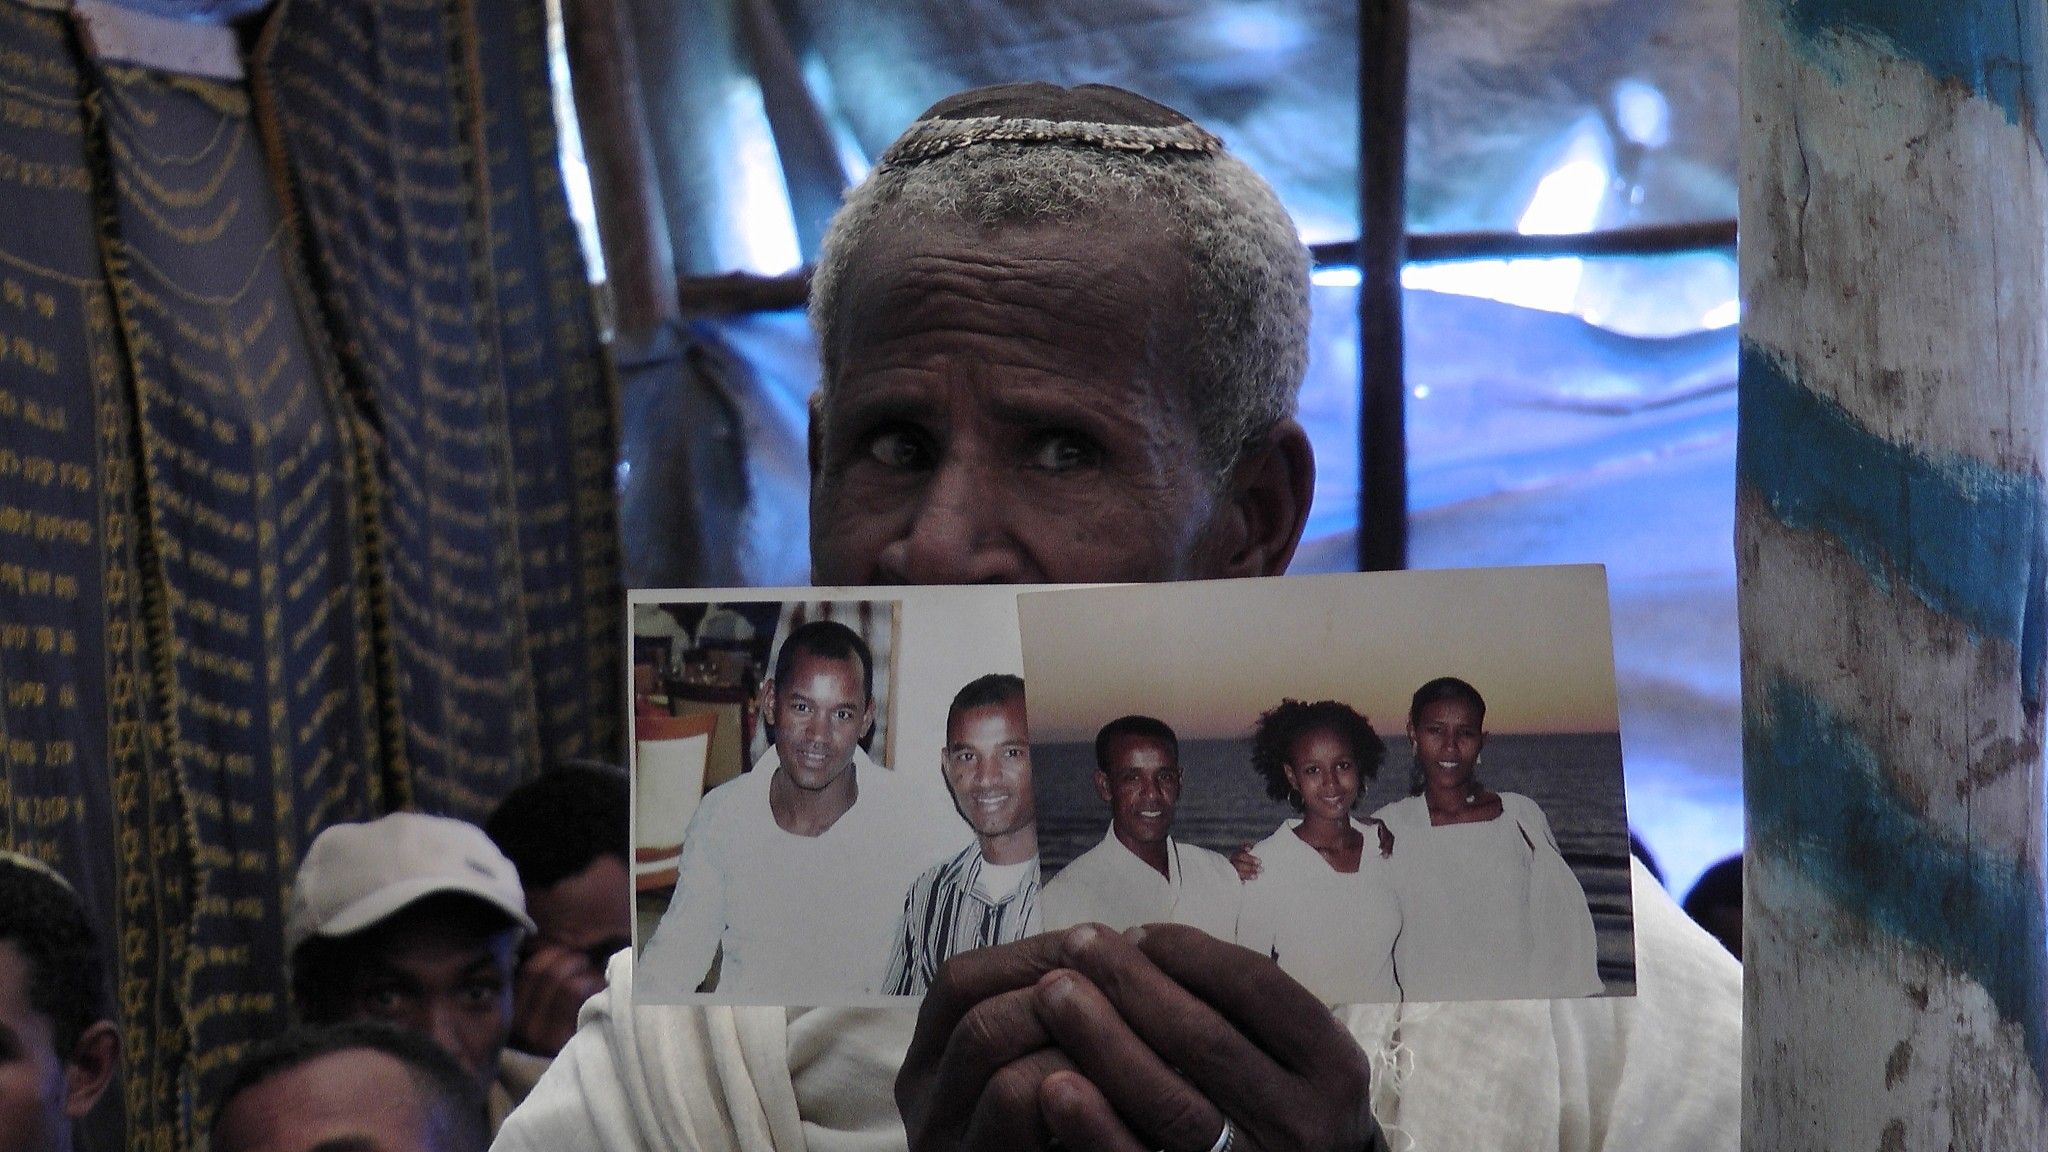 An Ethiopian worshiper at the synagogue in Addis Ababa praying and holding photos of family members living in Israel. (Bernard Dichek/Times of Israel)